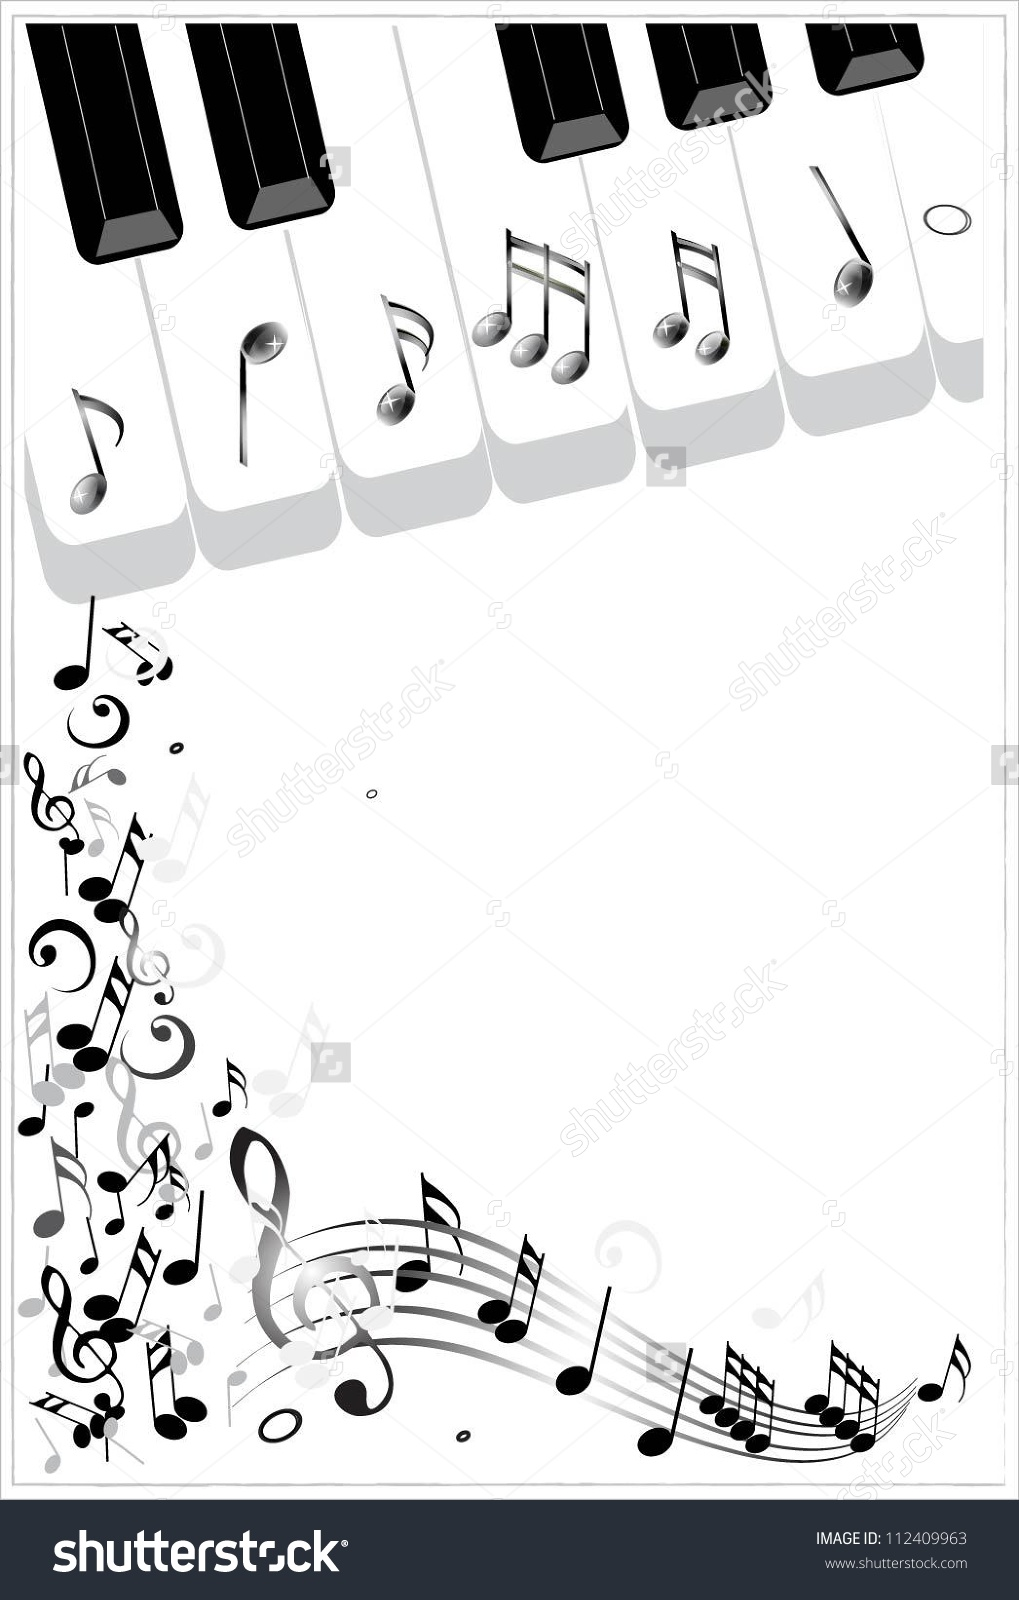 Piano sheet music clipart jpg freeuse download Clip Art Illustration Music Background Piano Stock Vector ... jpg freeuse download